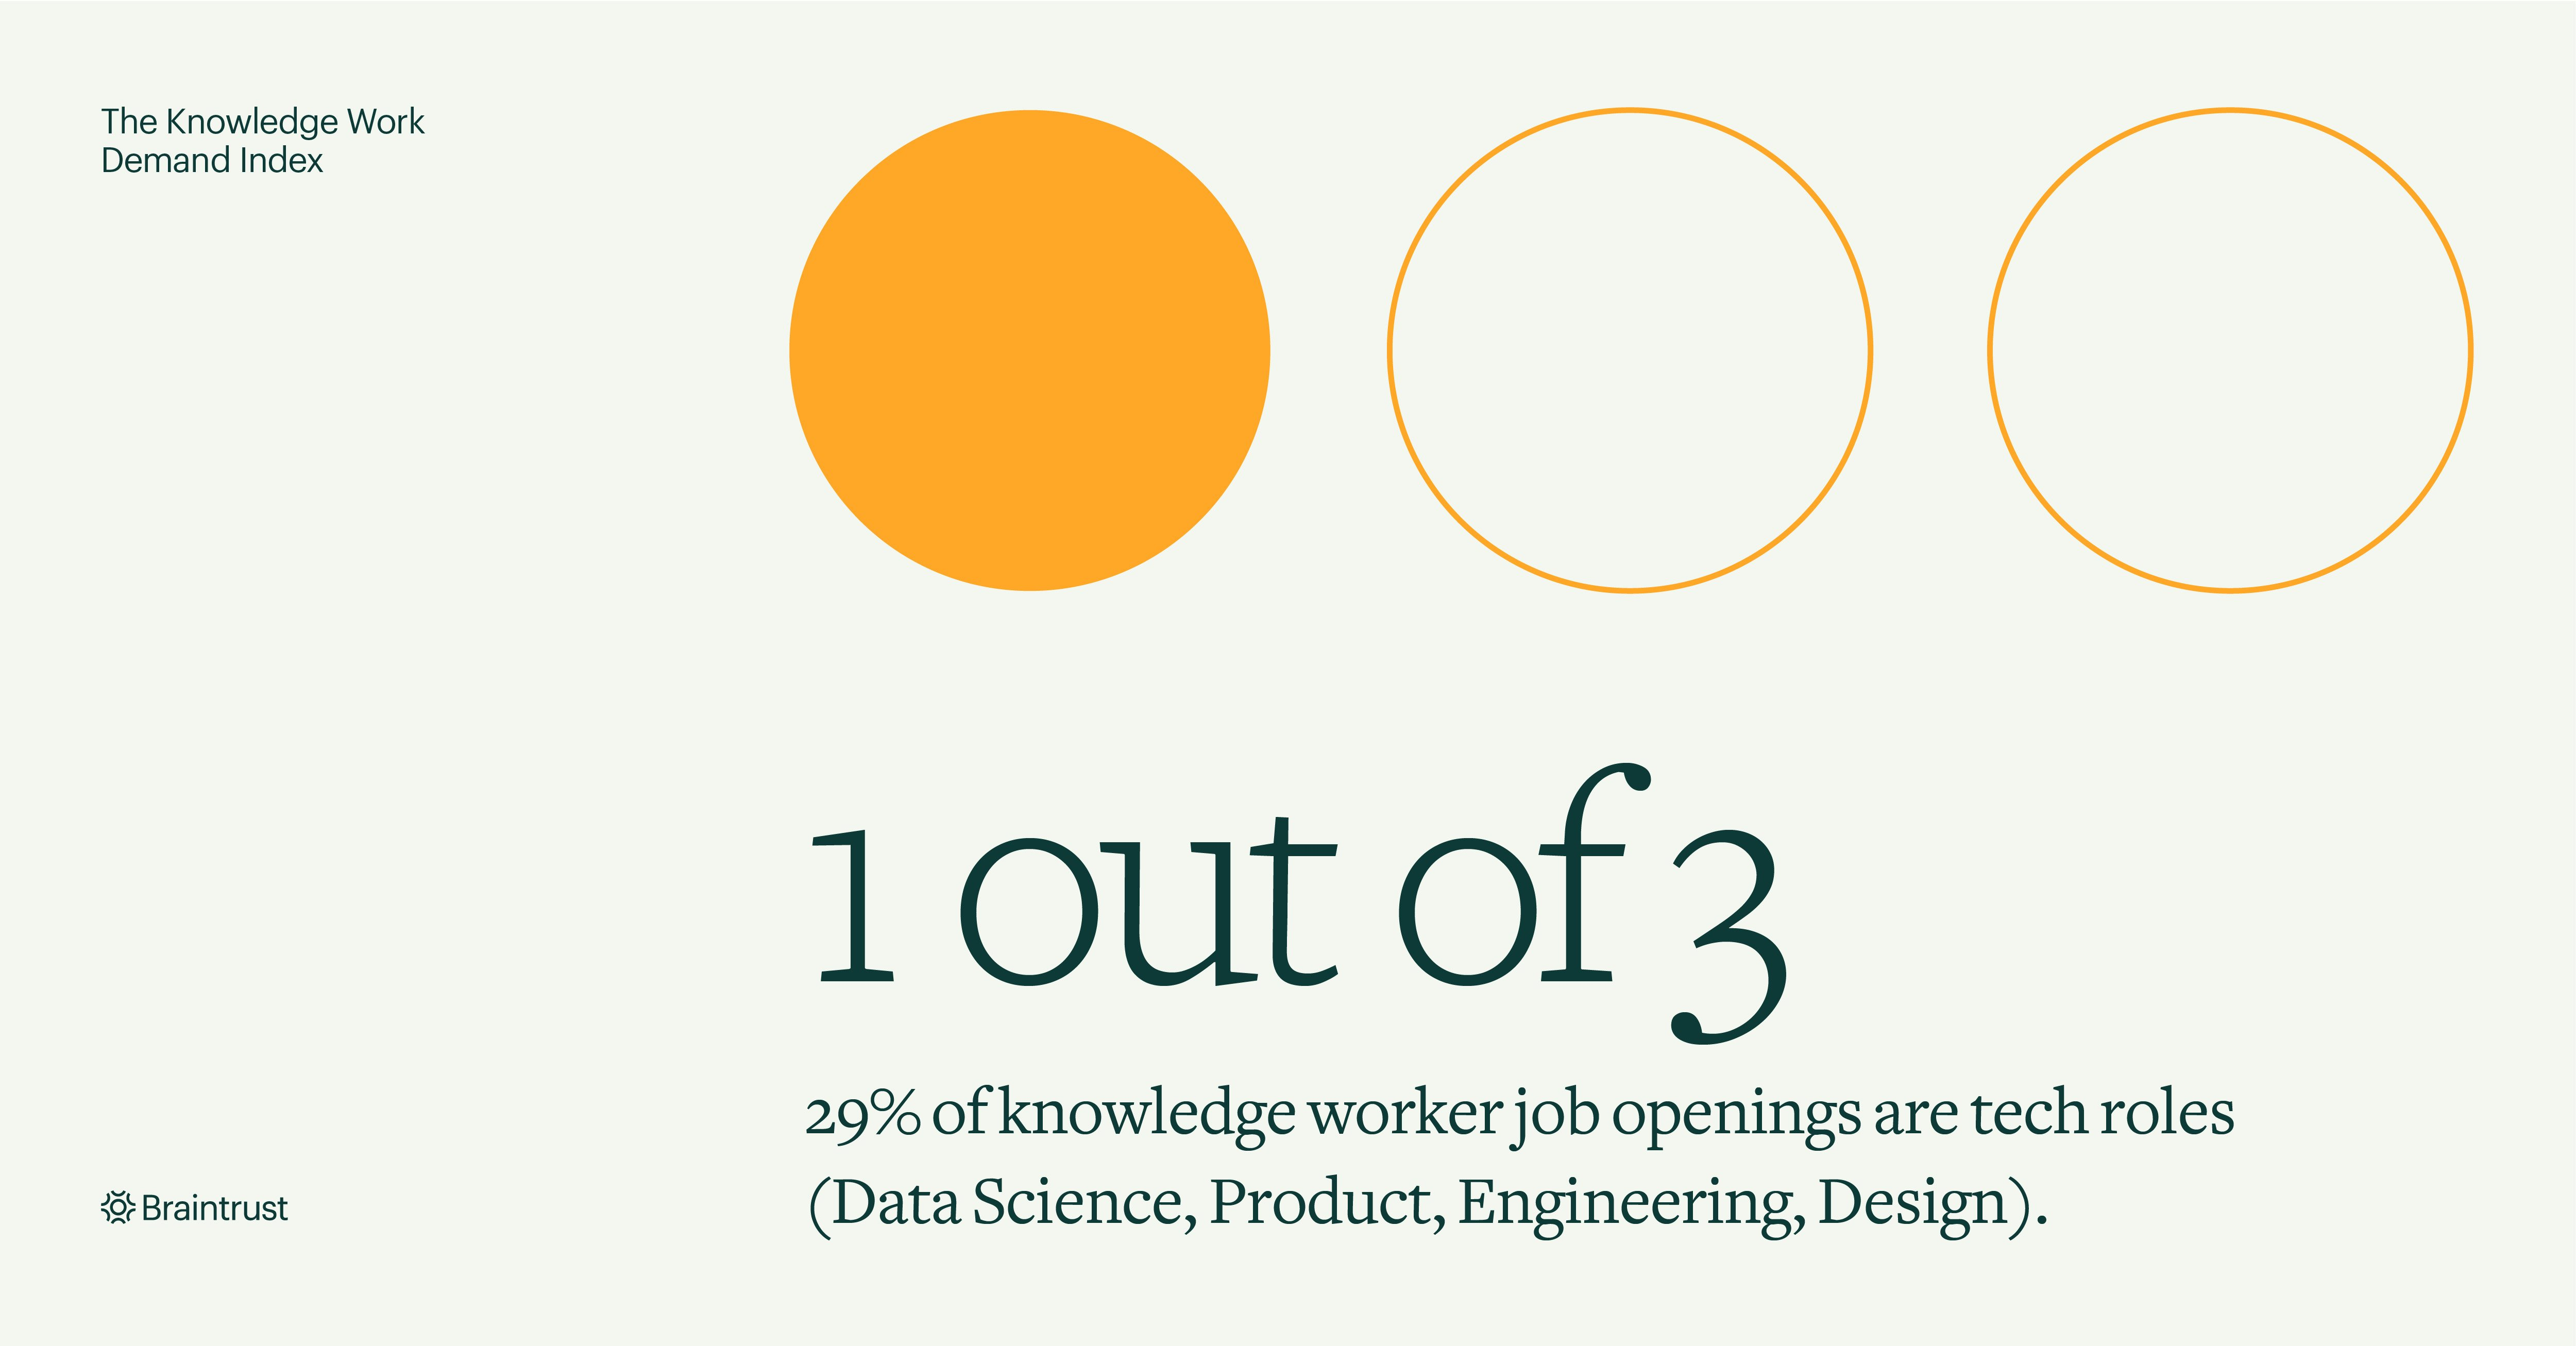 Braintrust announces Knowledge Work Demand Index with 1 out of 3 job openings being tech roles